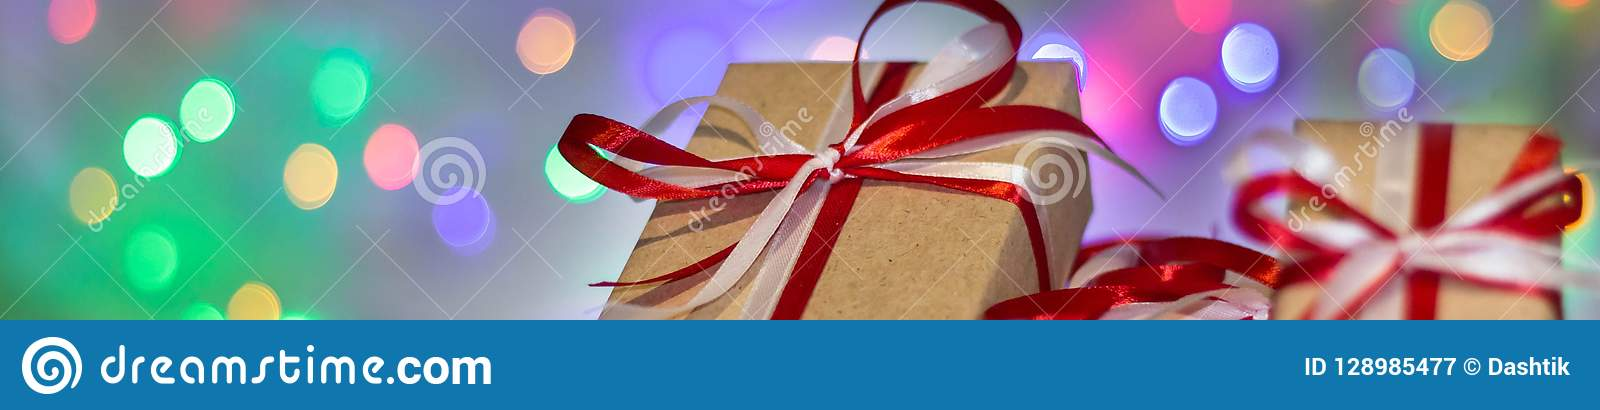 Banner of Christmas gift box against bokeh background. Holiday greeting card